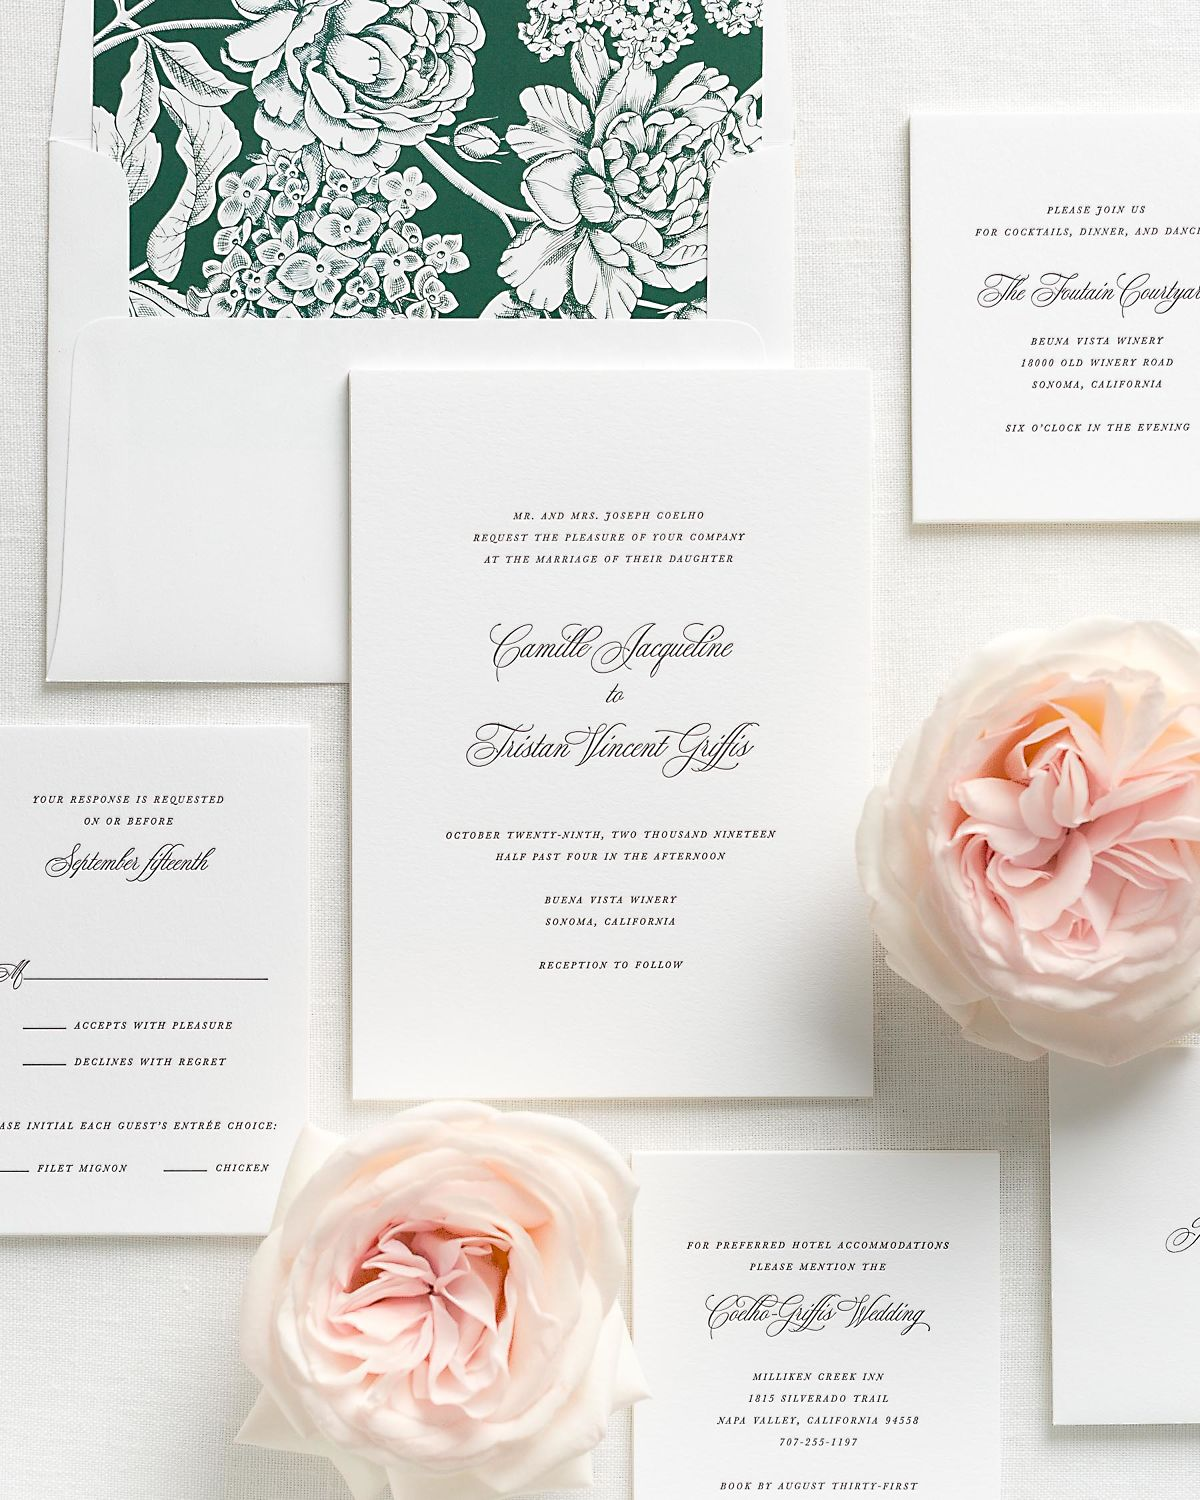 Letterpress Wedding Invitations with Ivy Hydrangea Envelope Liner and Matching Accessories